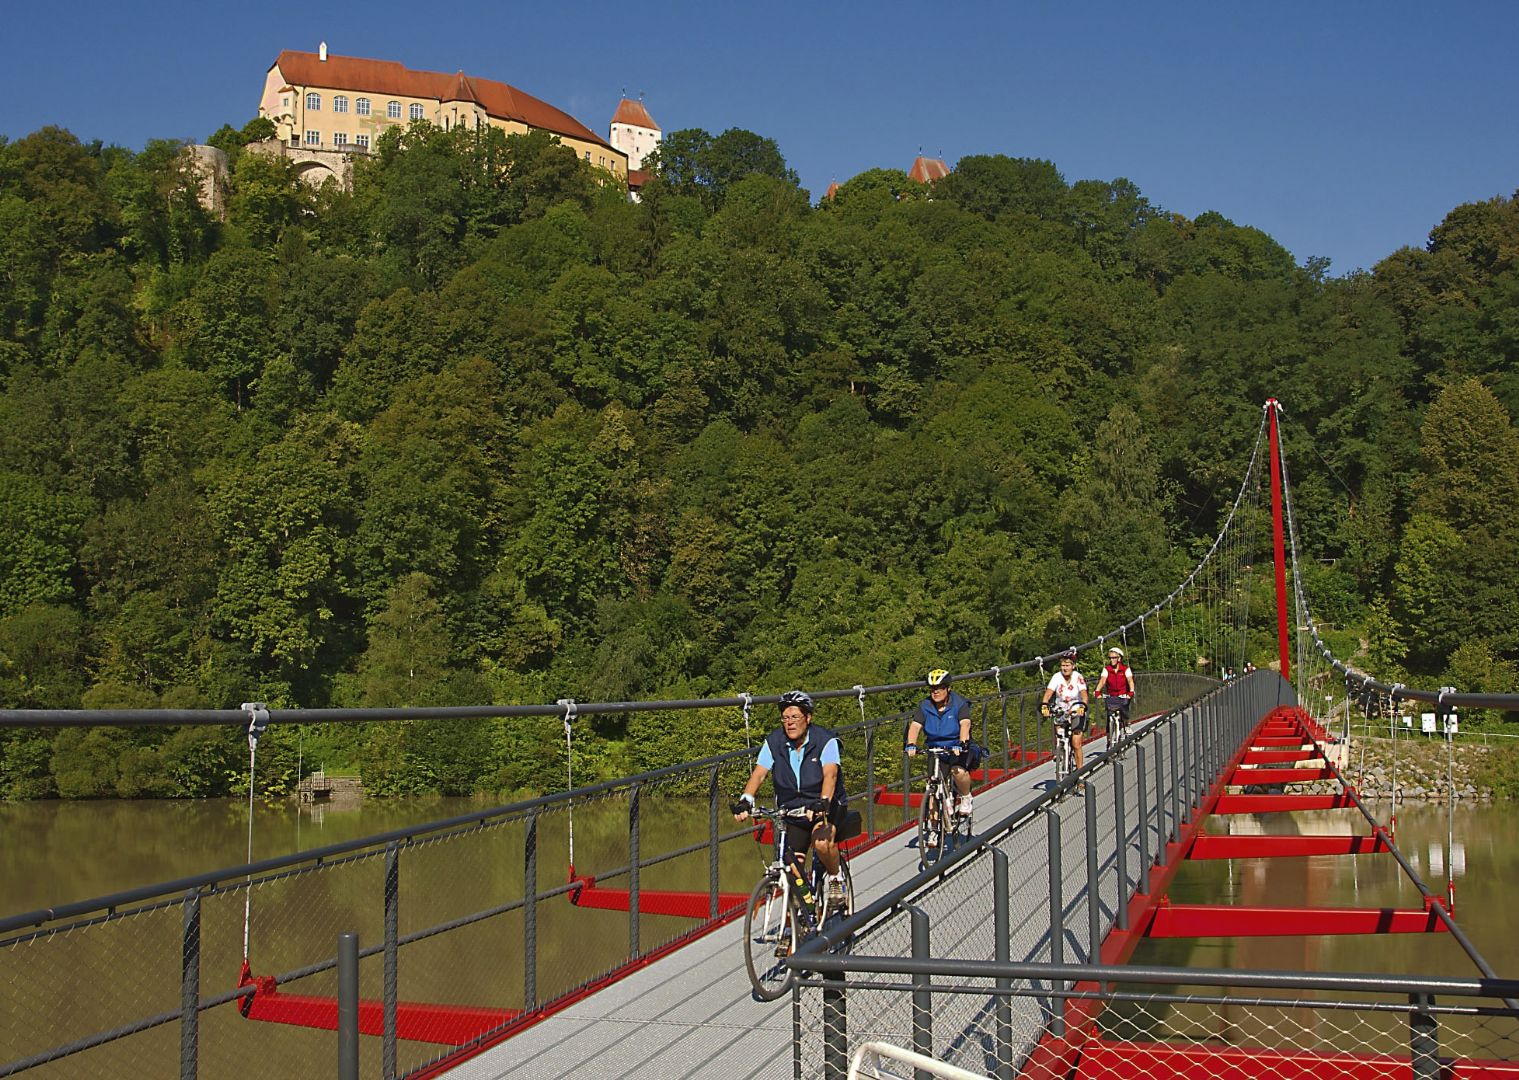 cycling-holiday-in-germany-and-austria-danube - Germany and Austria - The Danube Cycle Path - Supported Leisure Cycling Holiday - Leisure Cycling